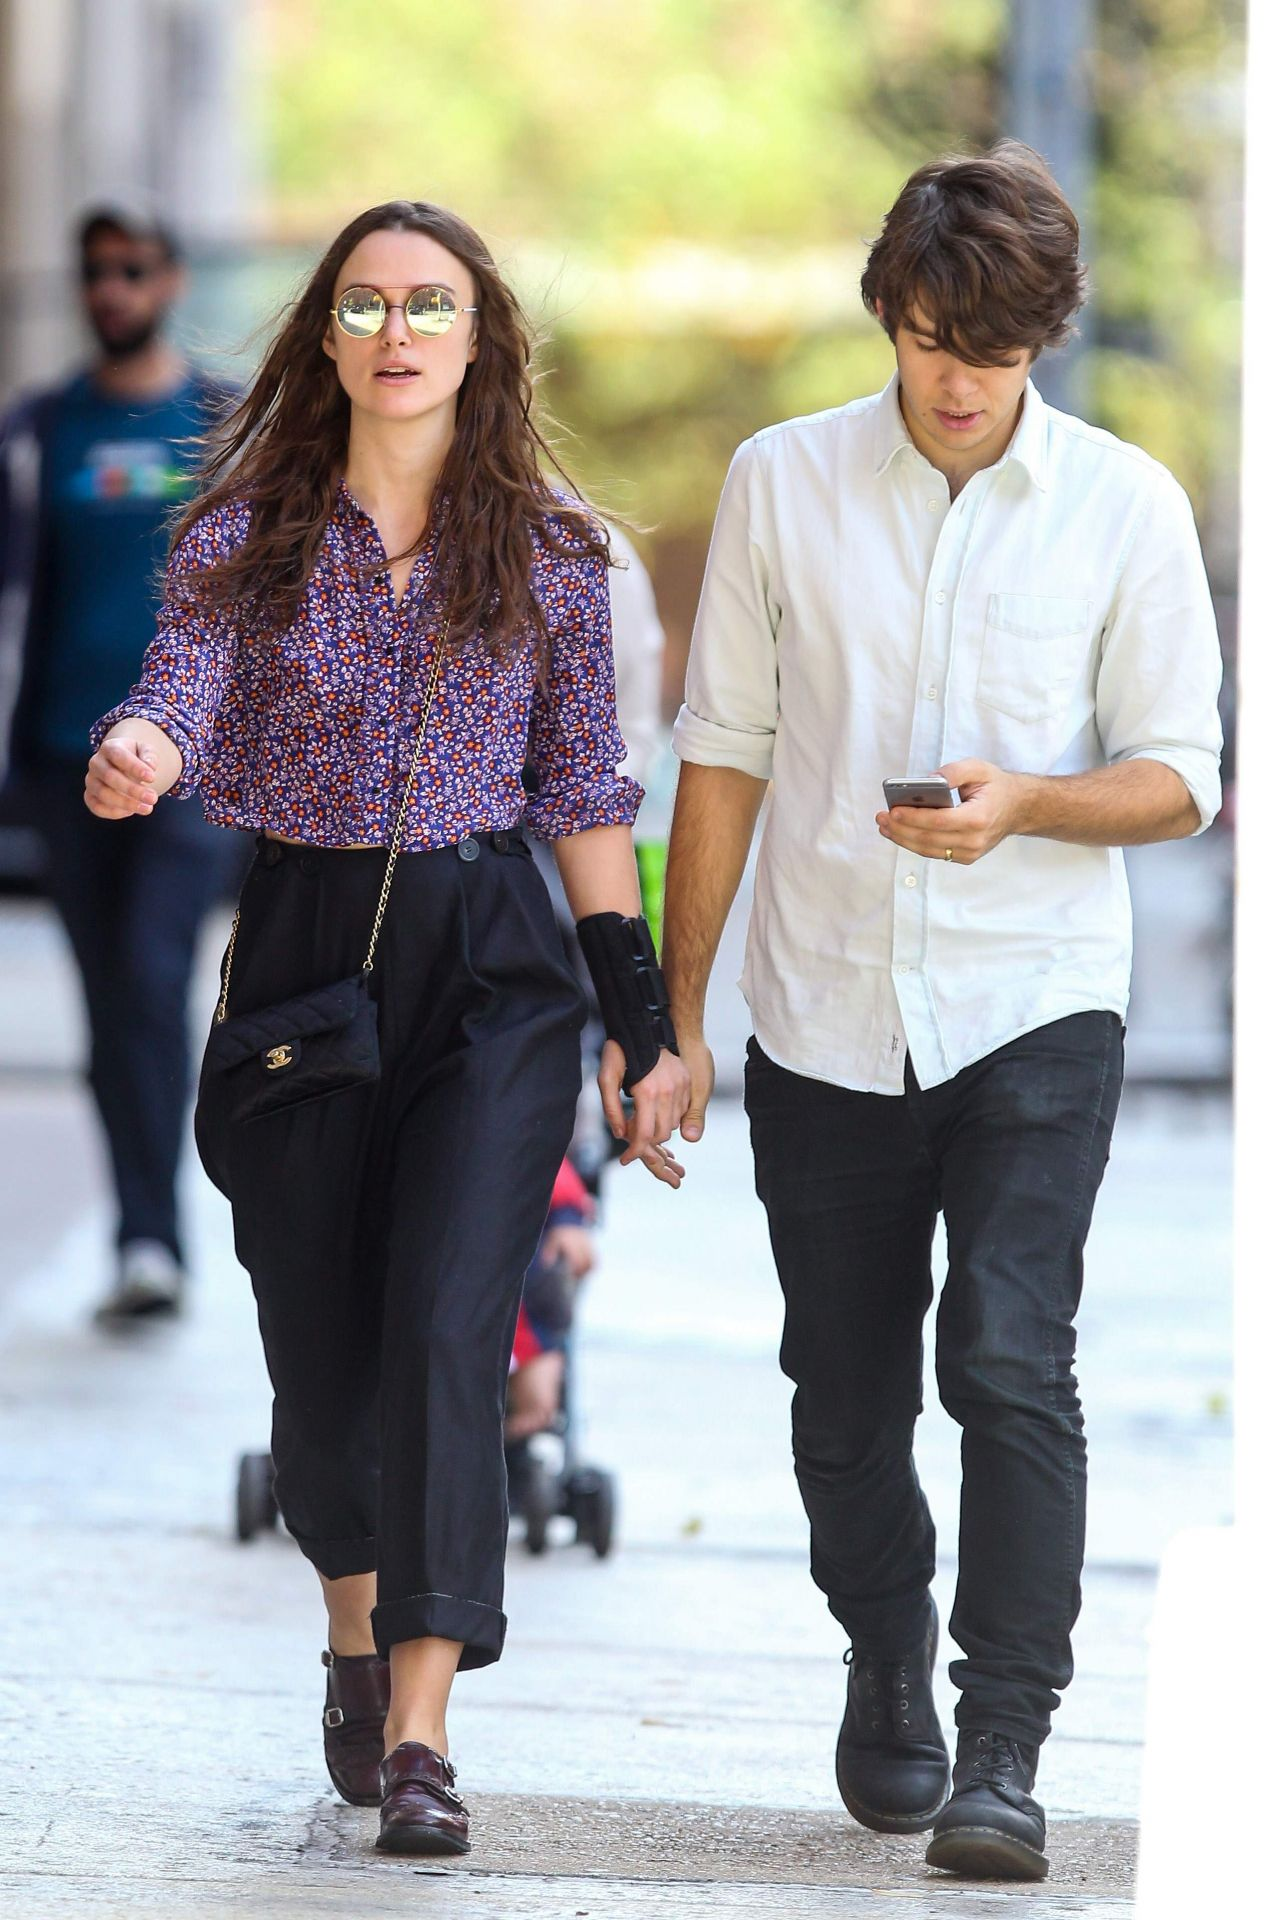 keira knightley dating 2014 Subscribe for more videos jamie dornan dating history from 2003 to 2016 1 jamie dornan and keira knightley (2003-2005) 2 jamie dornan and sienna miller (2006) 3 jamie dornan and lindsay lohan ( 2006) 4 jamie dornan and kate moss (2006) 5 jamie dornan and.